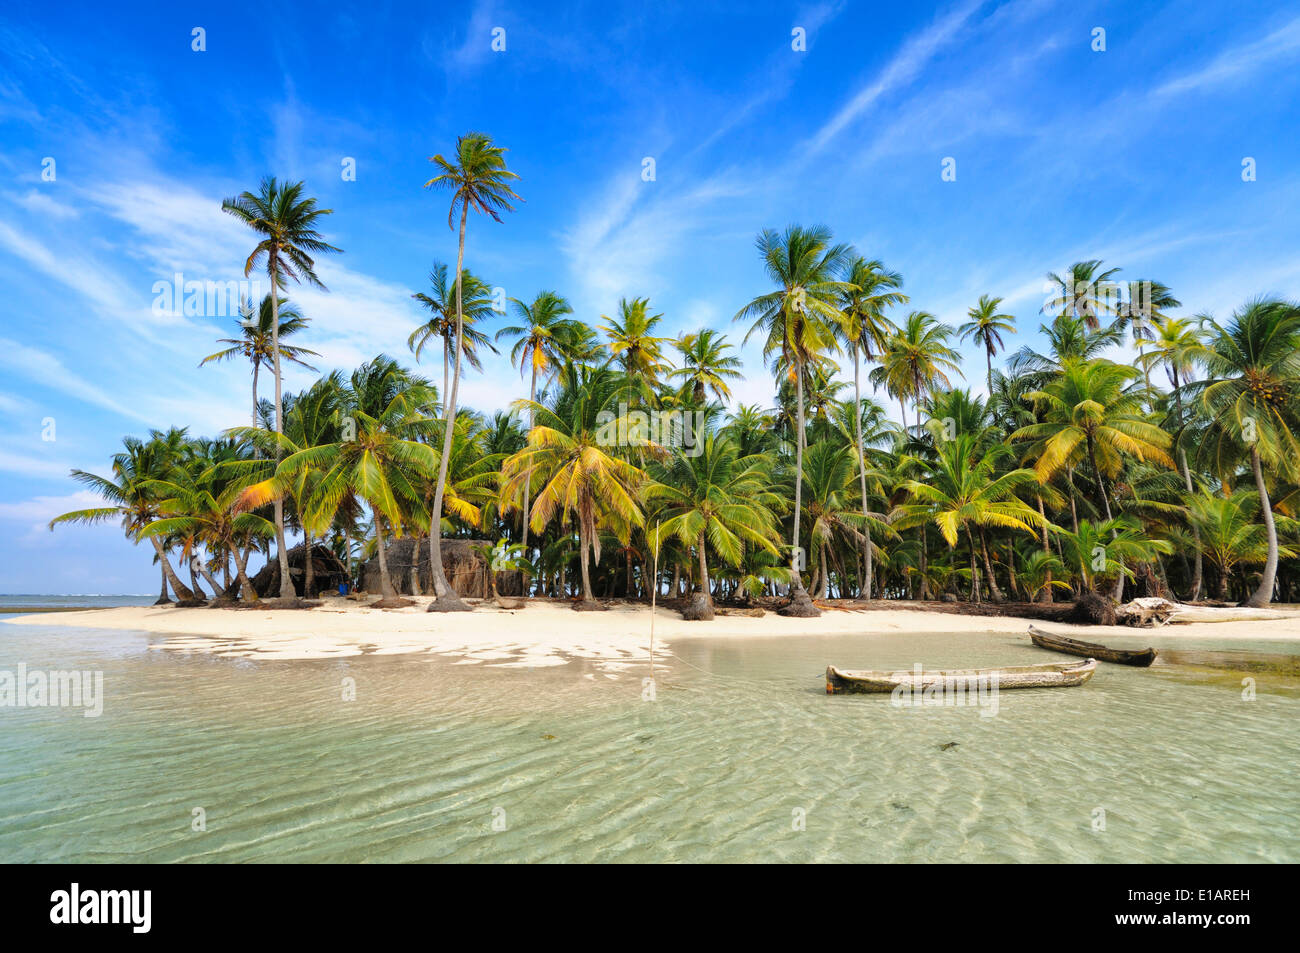 Deserted Tropical Island: Dugout Boats, Deserted Beach With Palm Trees On A Tropical